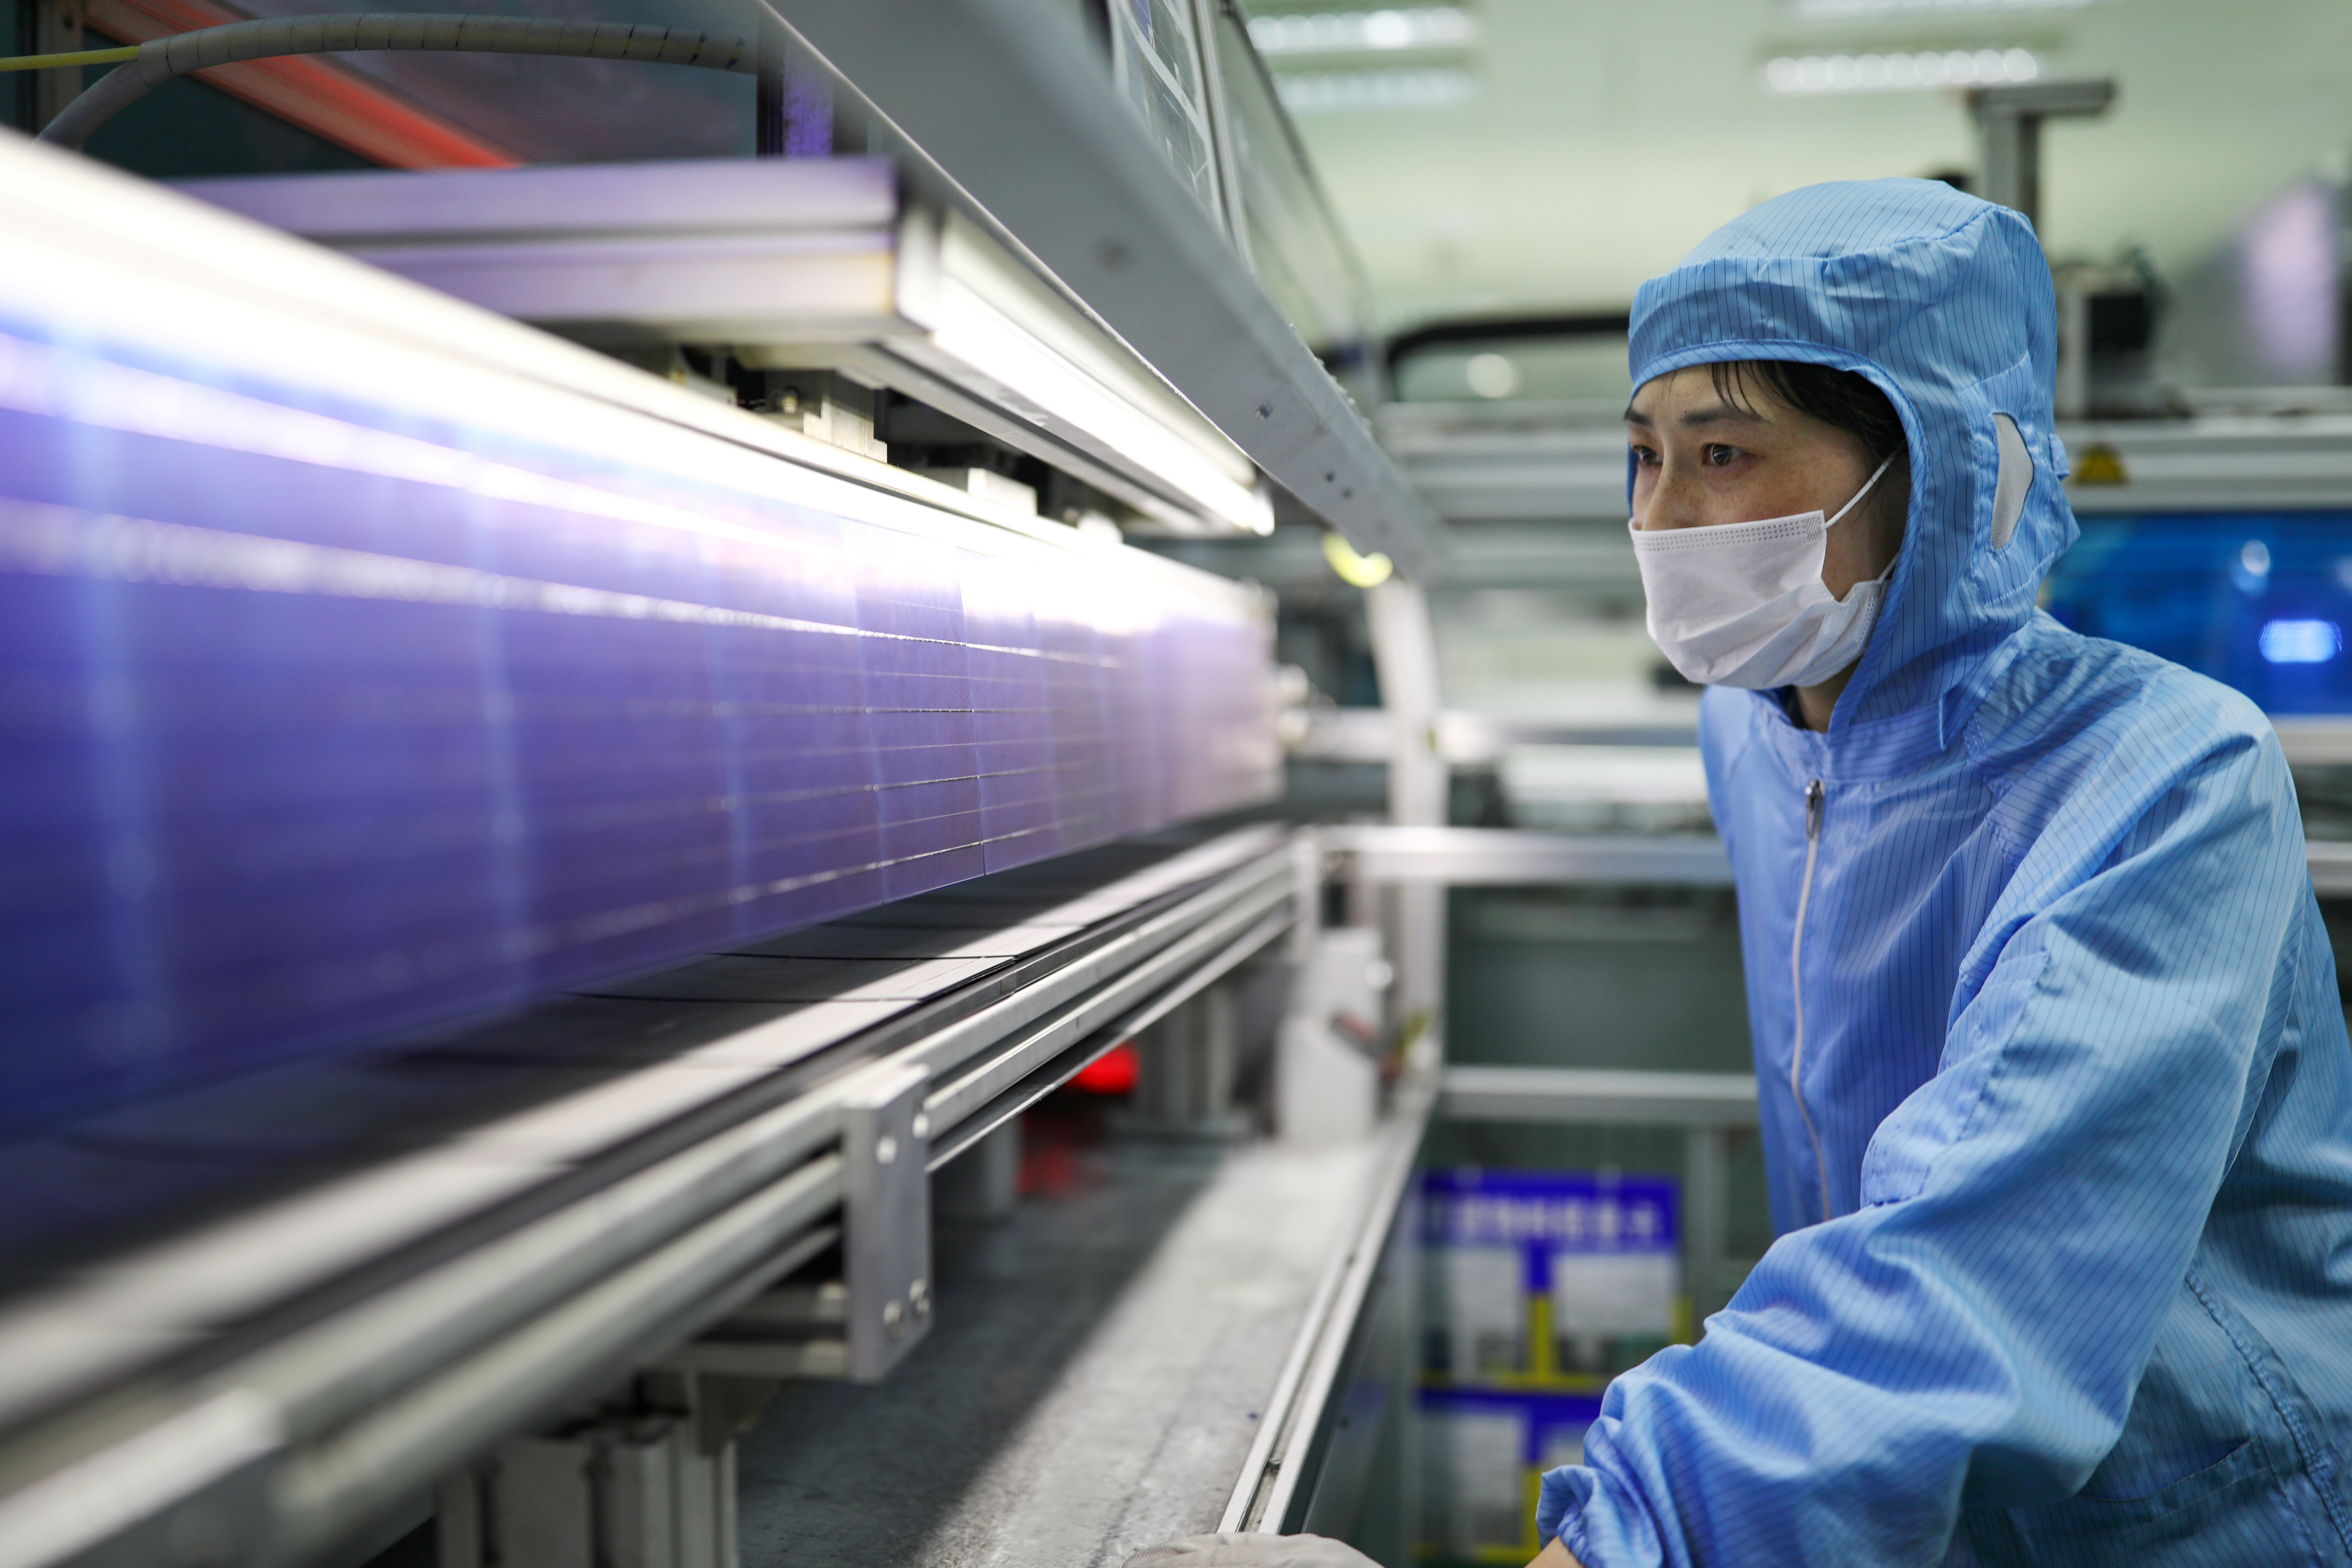 An employee works at a solar panel production line of Shenzhou New Energy Co Ltd in Lianyungang, Jiangsu province, China March 15, 2018. Picture taken March 15, 2018